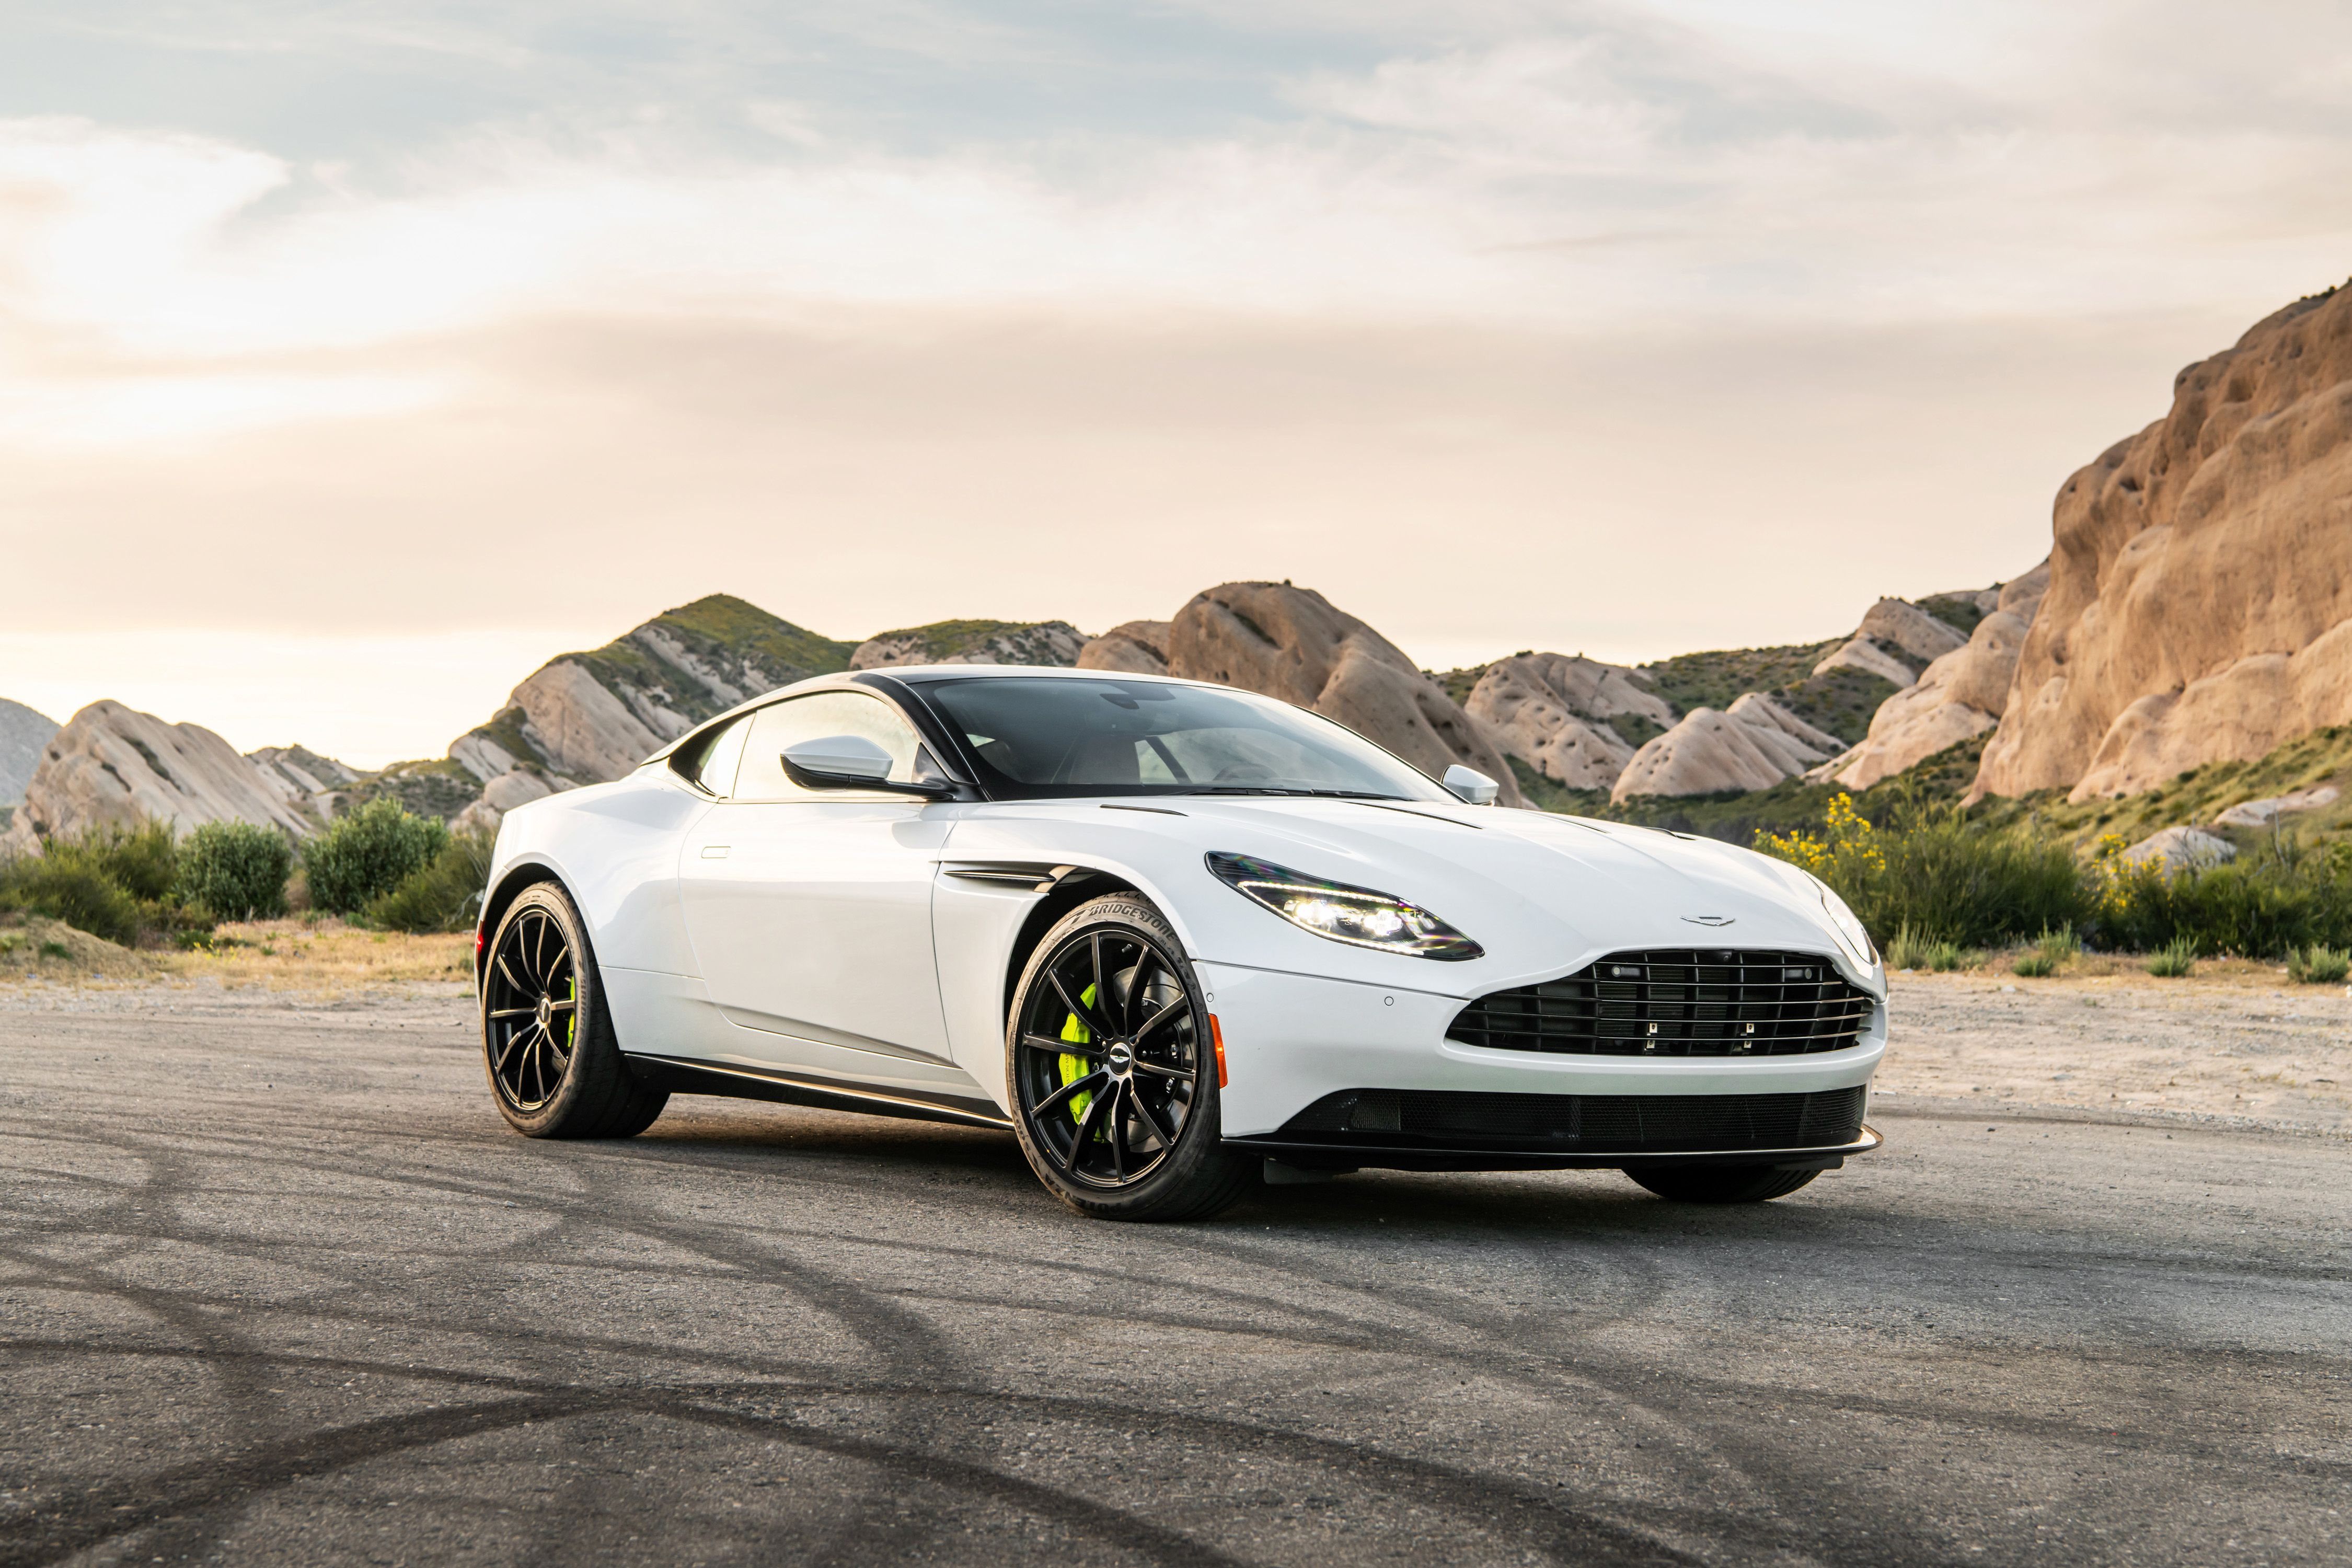 2020 Aston Martin Db11 Review Pricing And Specs